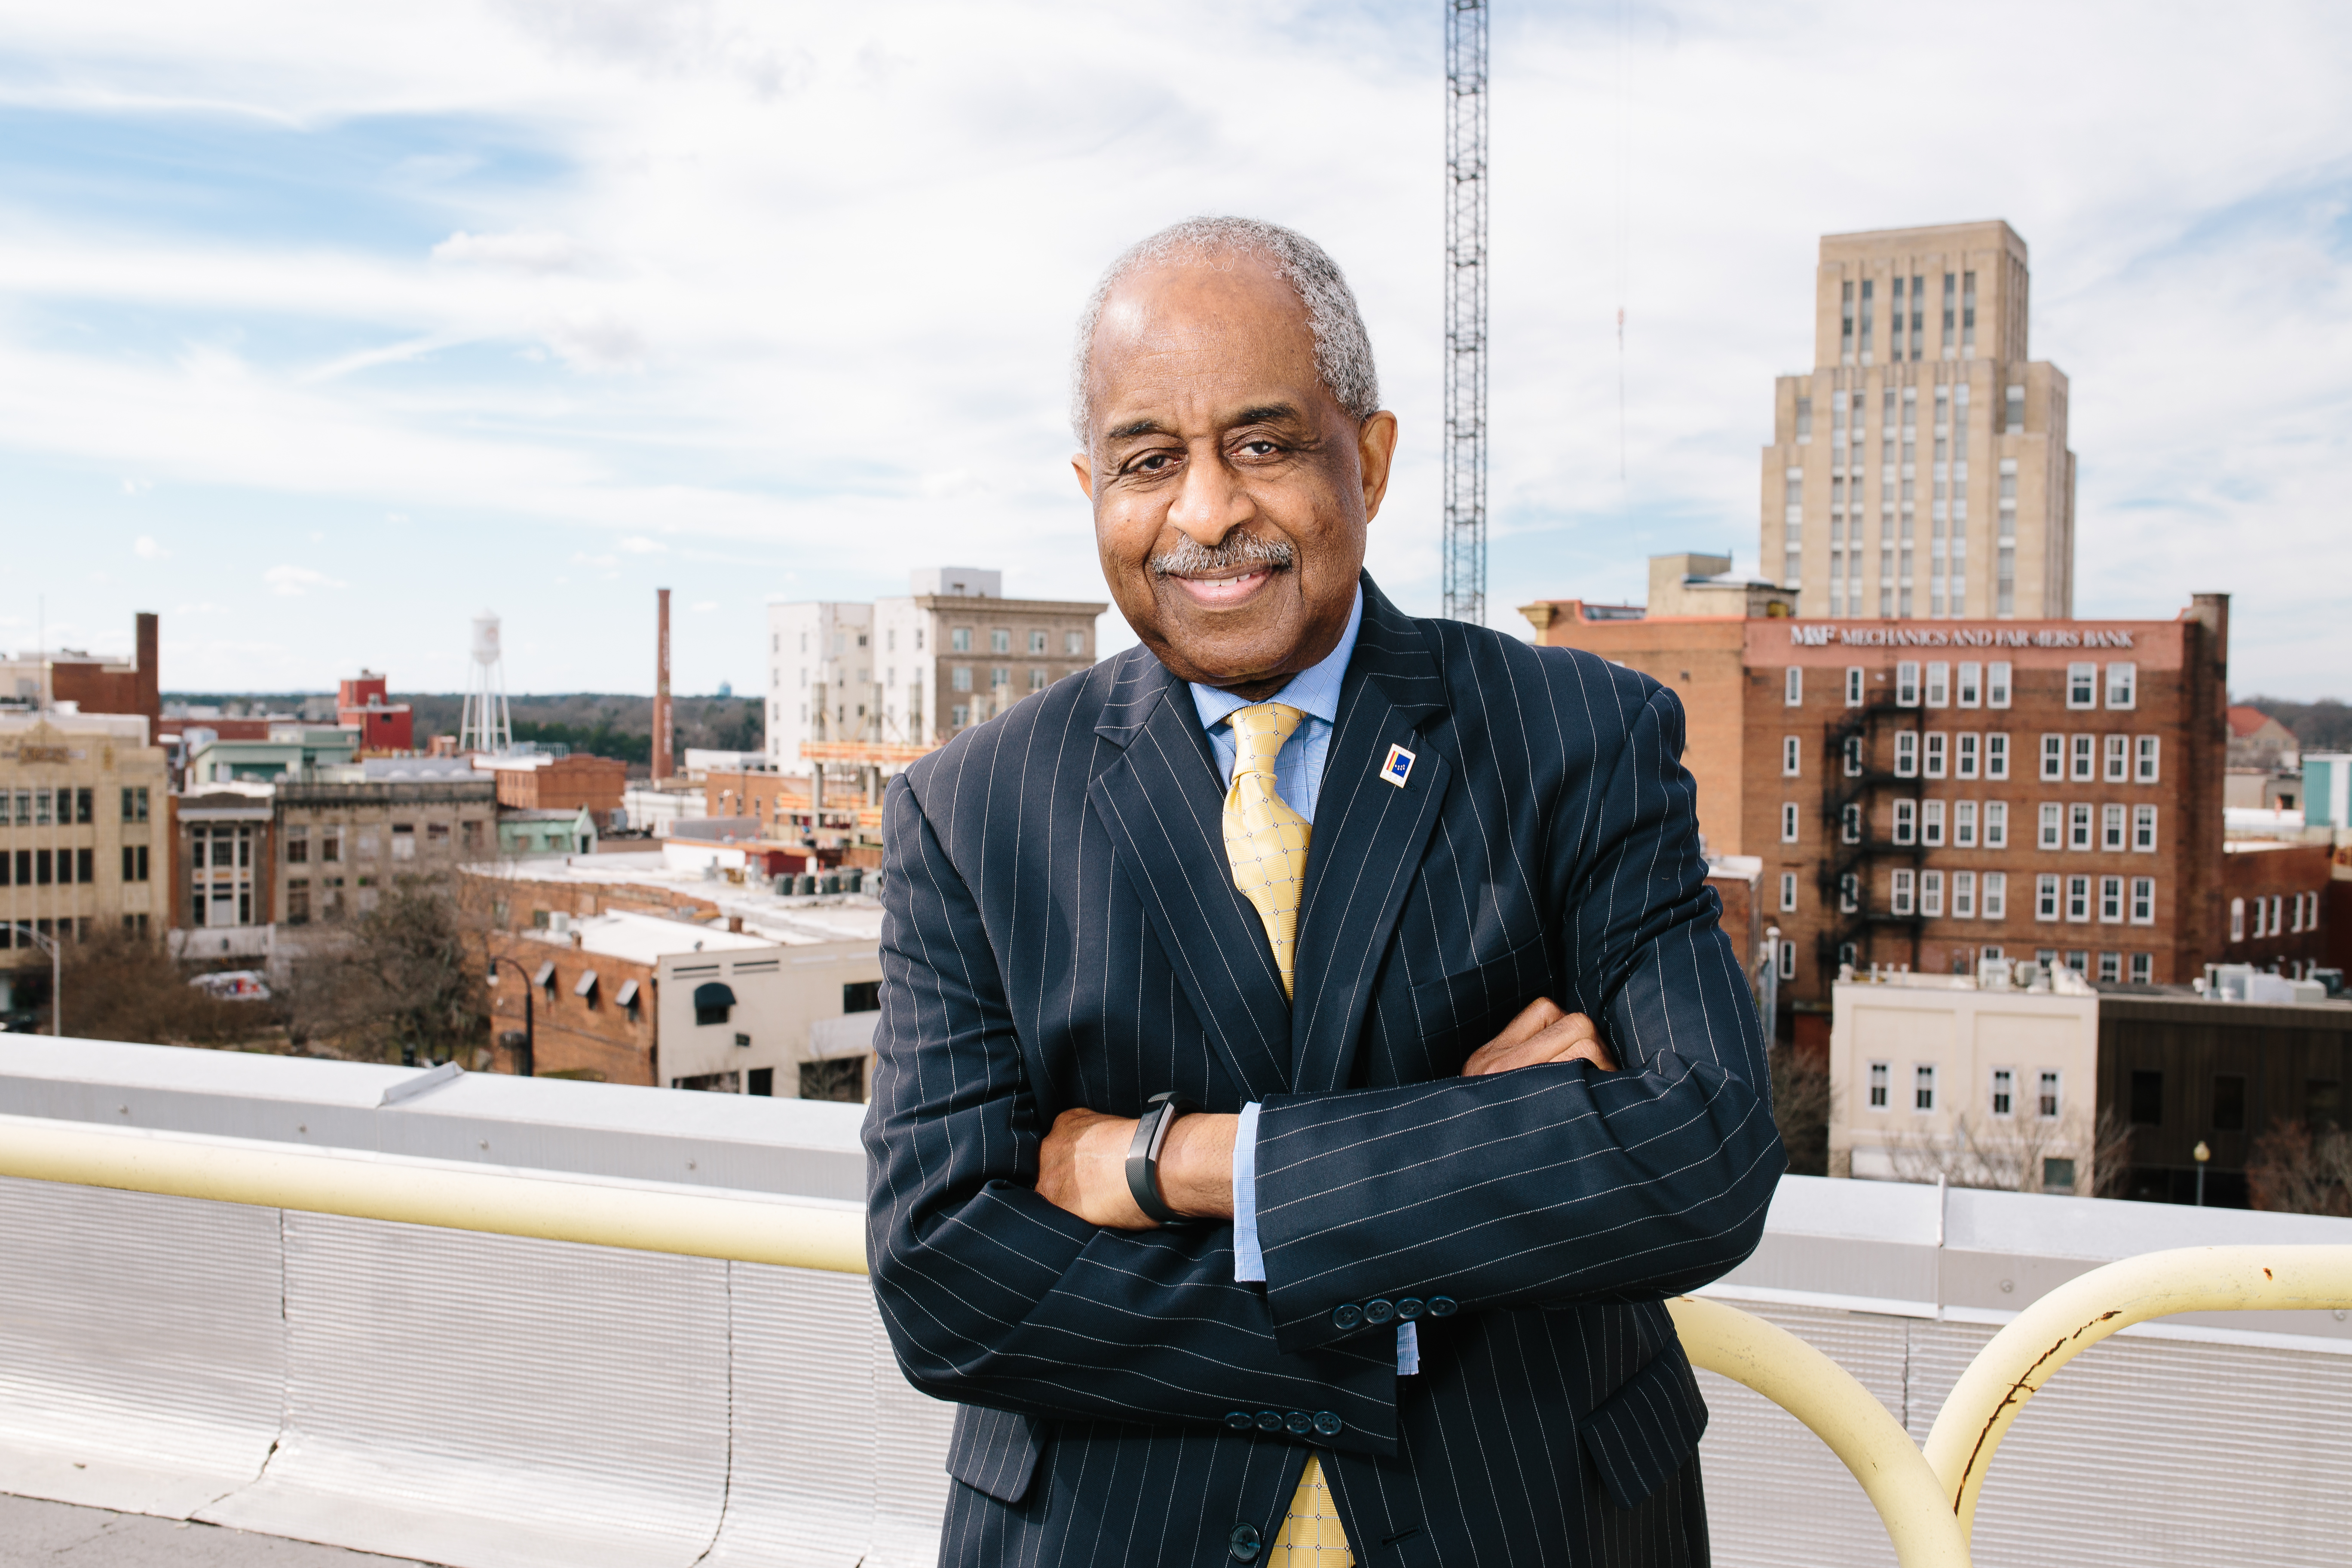 Mayor Bill Bell Leaves The Political Stage On High Note Durham